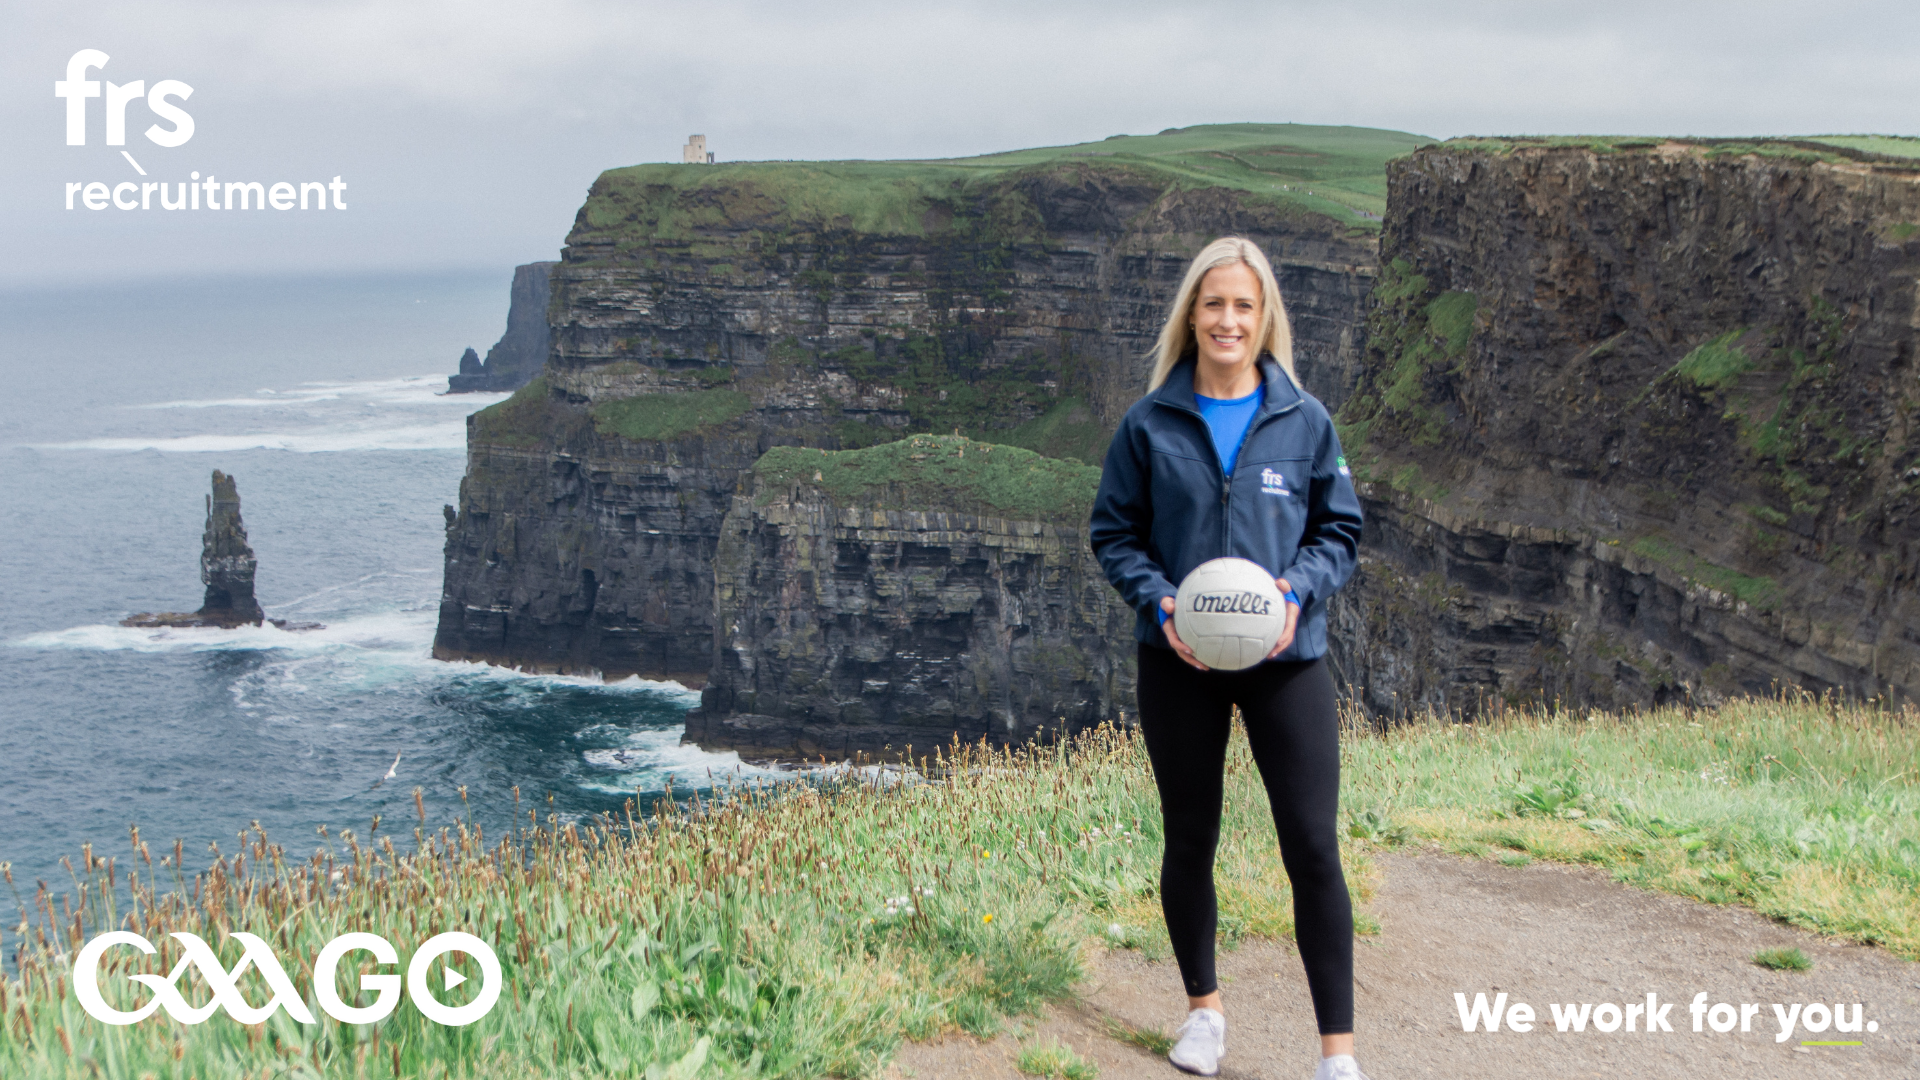 Coming back to Ireland - Q&A with Bríd Stack.